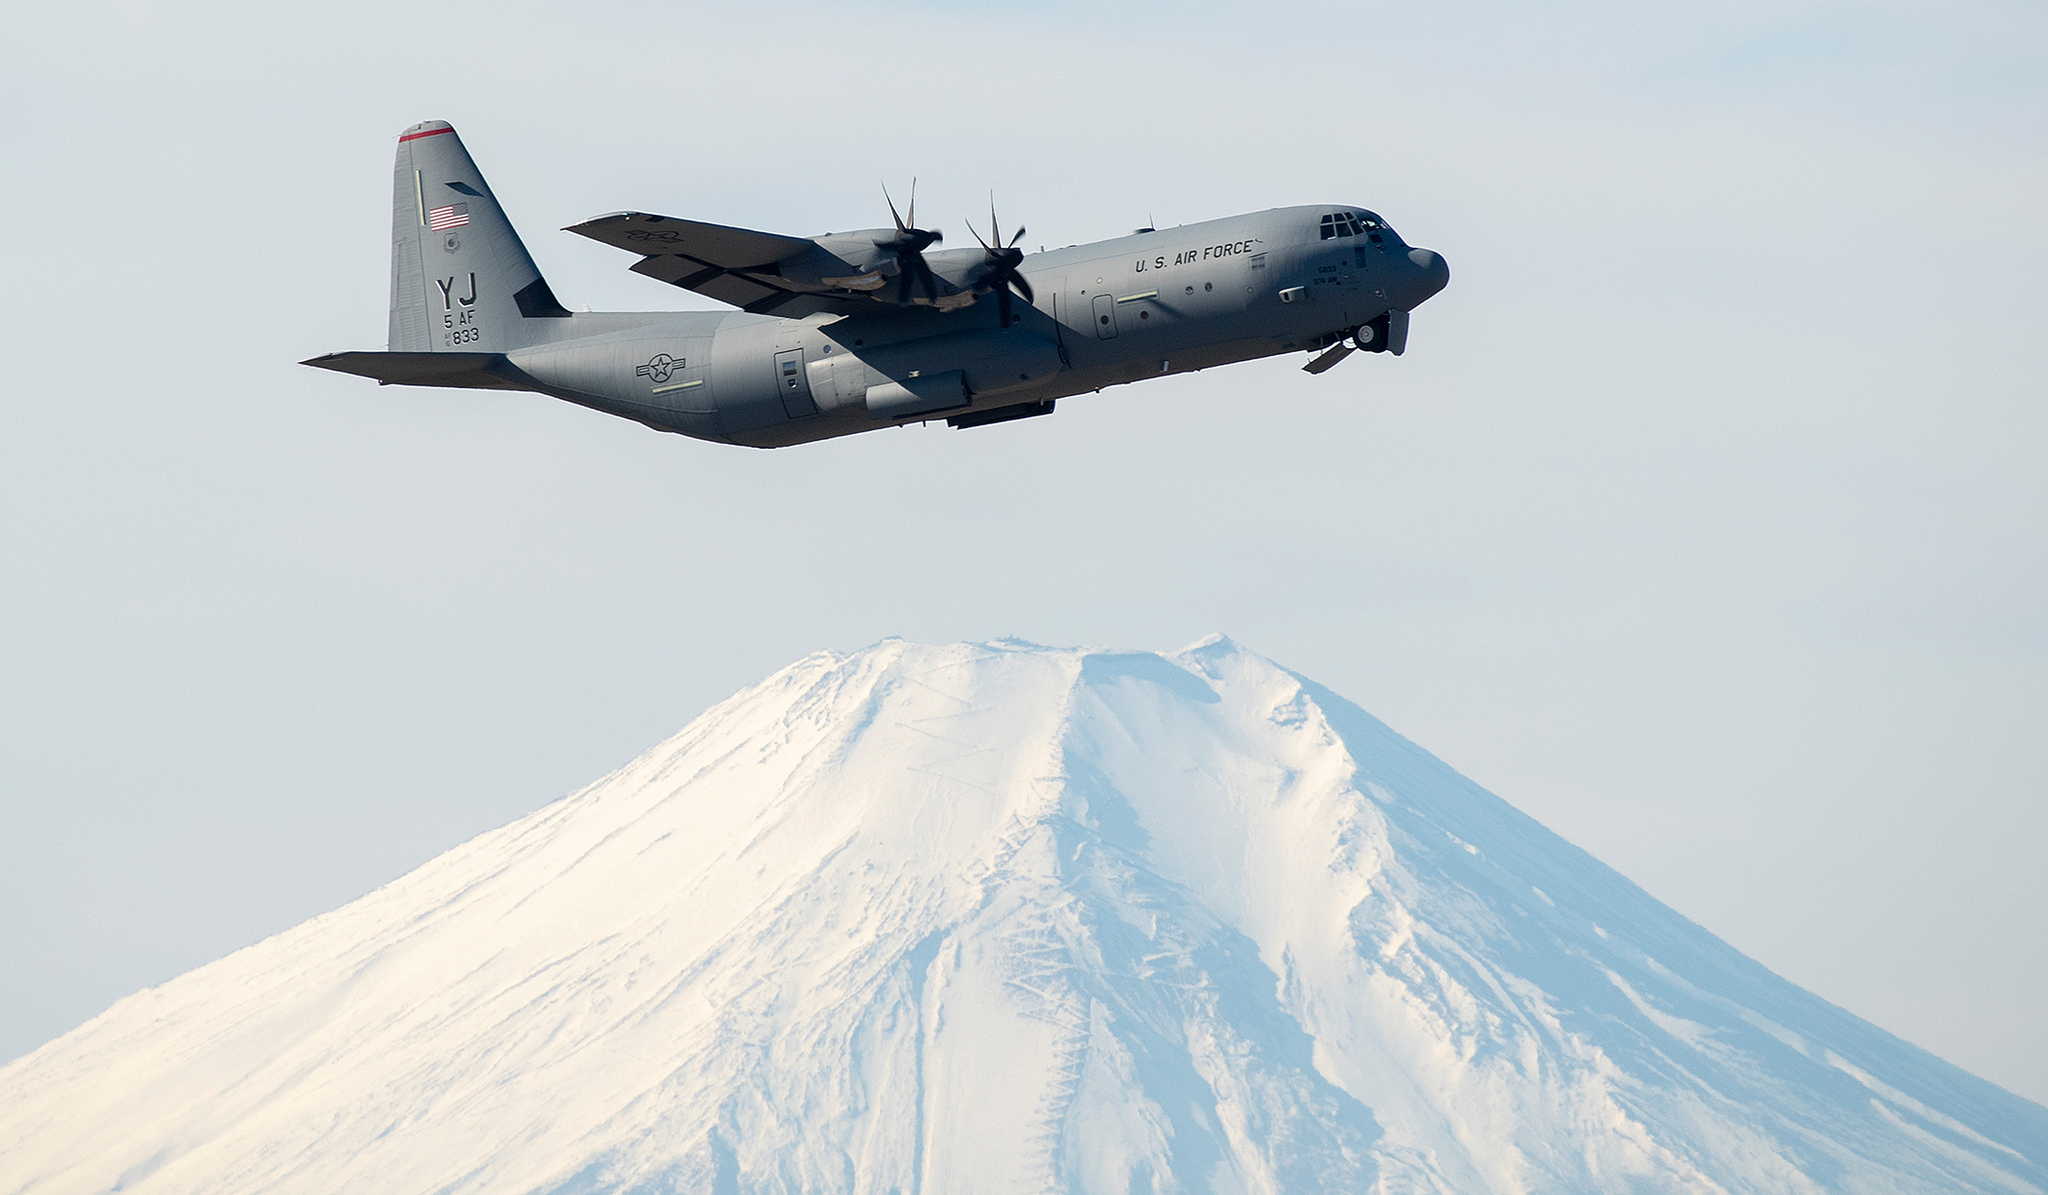 An Air Force C-130J Super Hercules flies over Yokota Air Base, Japan, during a training mission. (Yasuo Osakabe/Air Force)